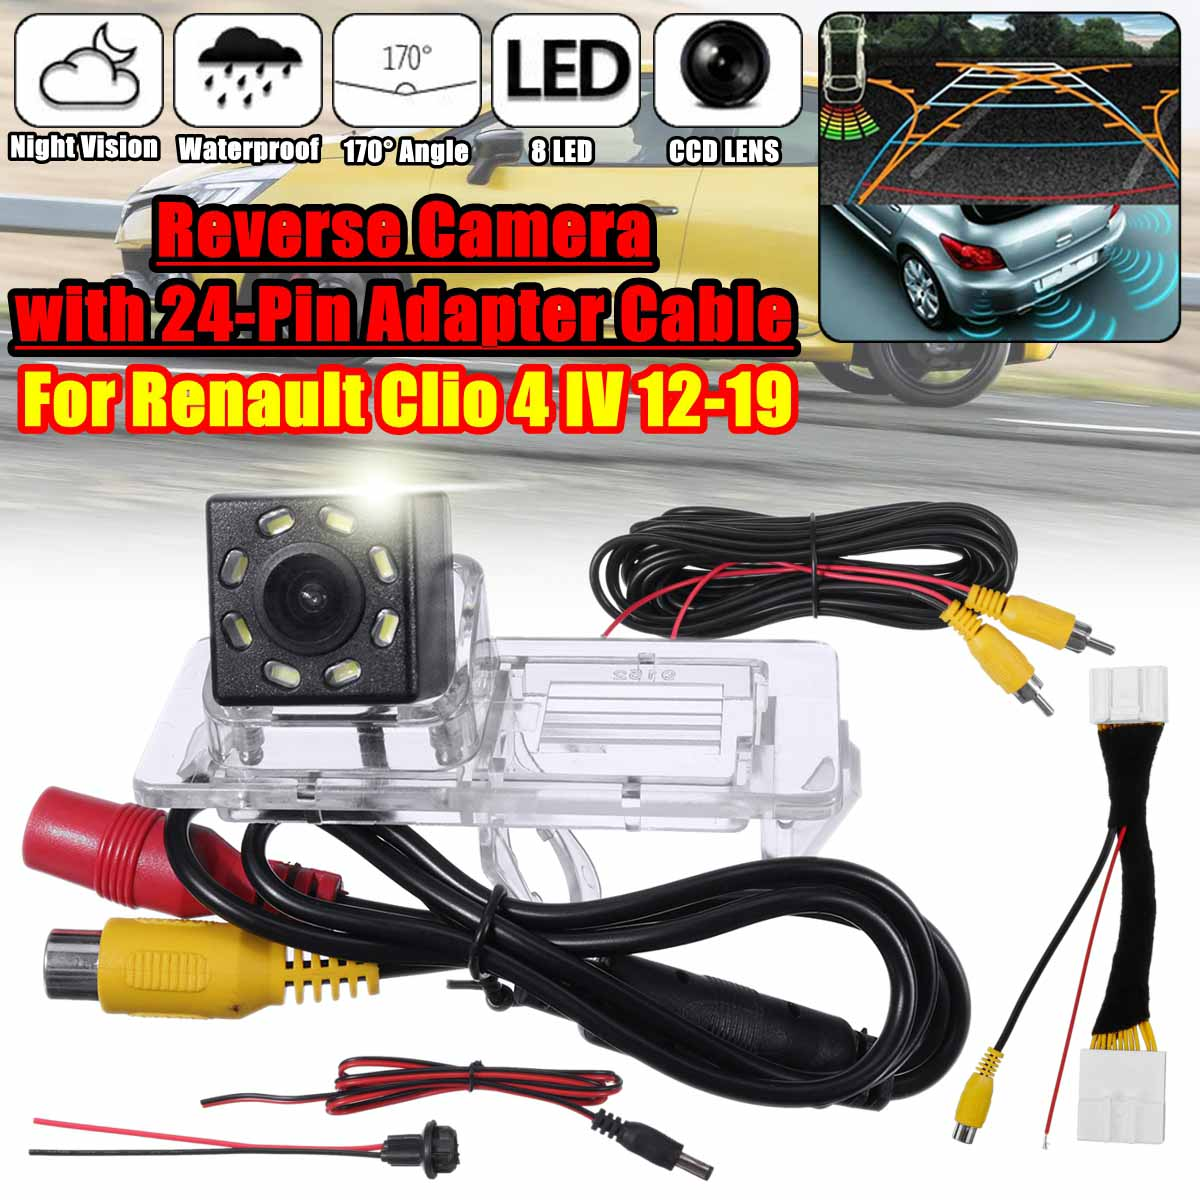 Car Rear View Back Up Reverse Camera Sets For Renault Clio 4 IV 2012-2019 HD Night Vision RCA With 24Pin Adapter Cable